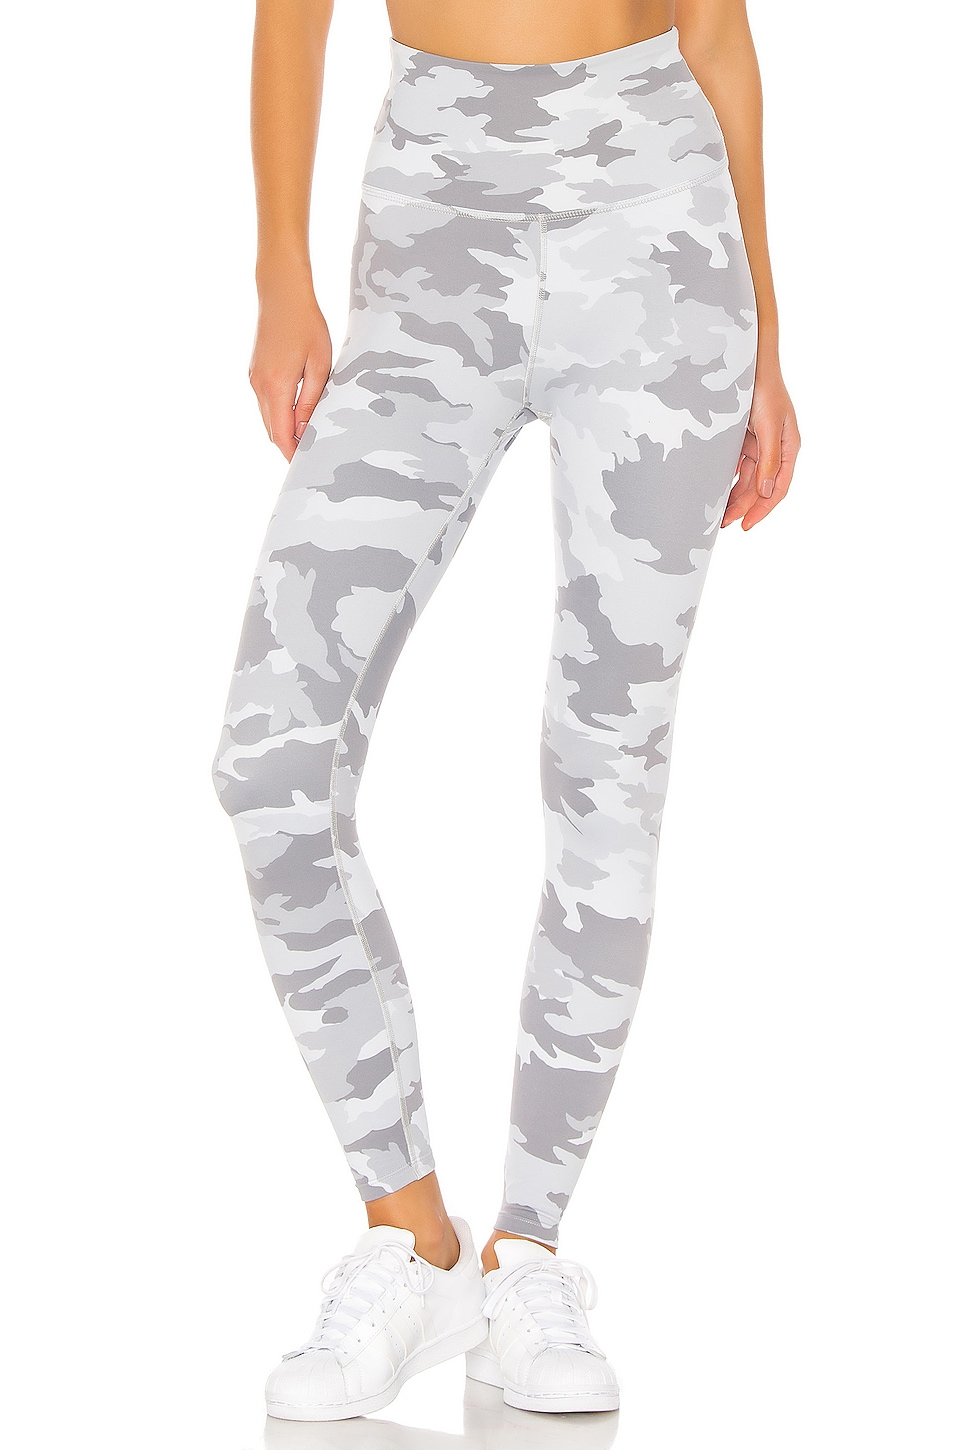 Beyond Yoga Olympus High Waisted Midi Legging in Gray Camo